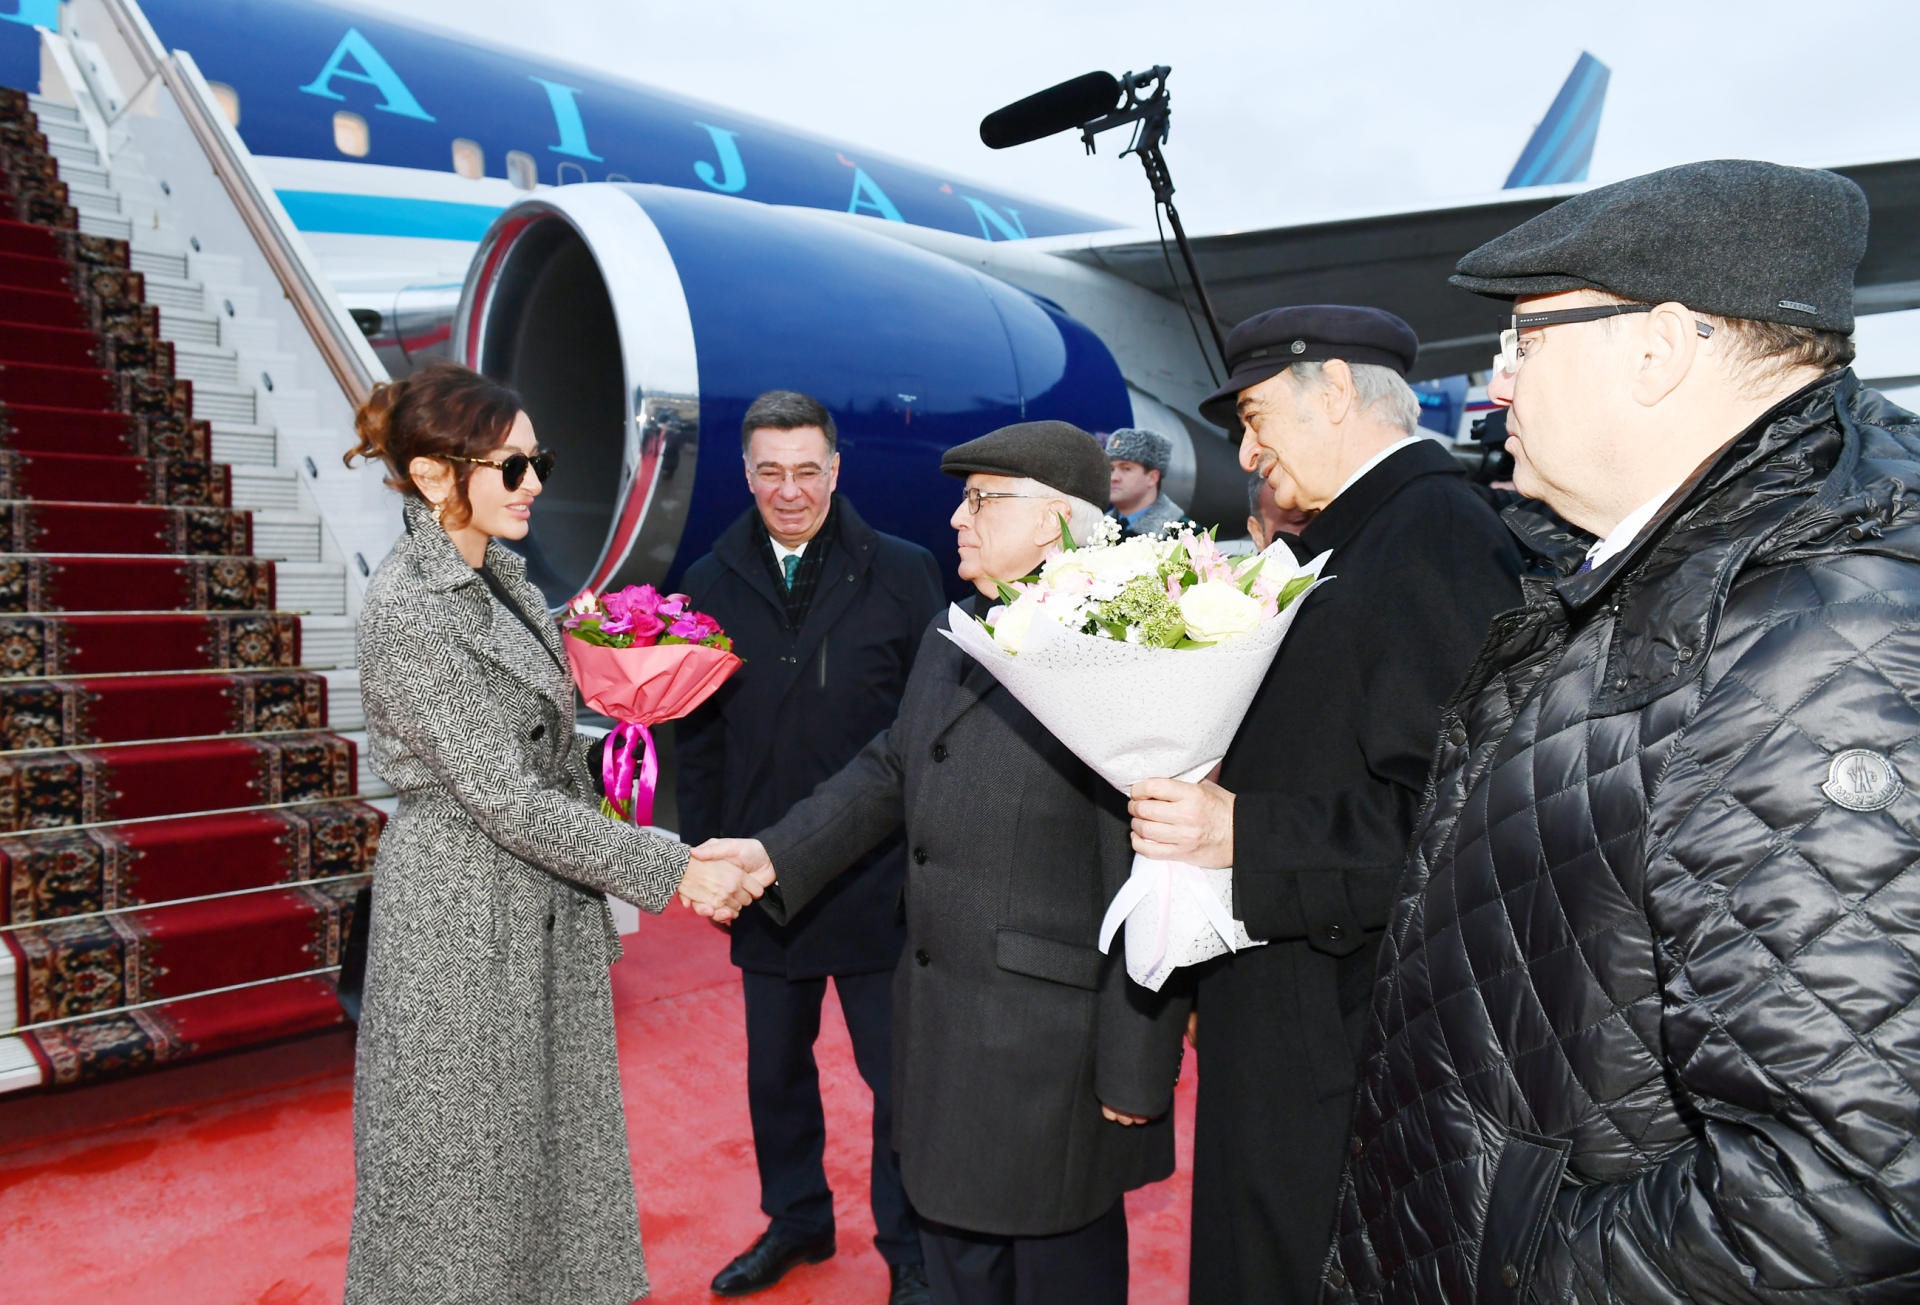 Azerbaijan's First VP Mehriban Aliyeva arrives in Russia for official visit (PHOTO)